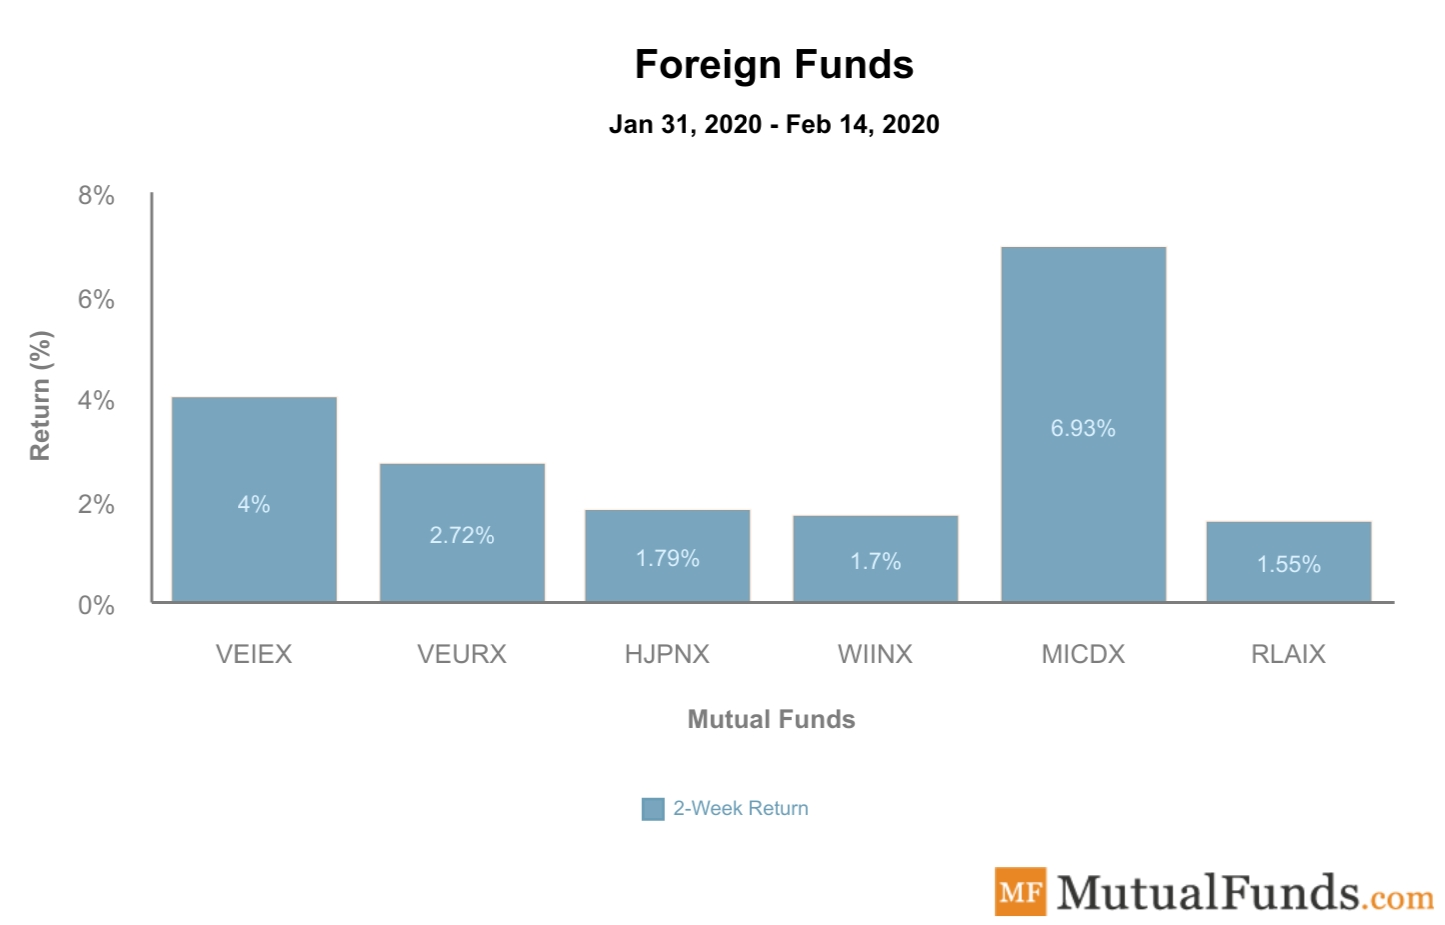 Foreign Funds Performance Feb 18, 2020